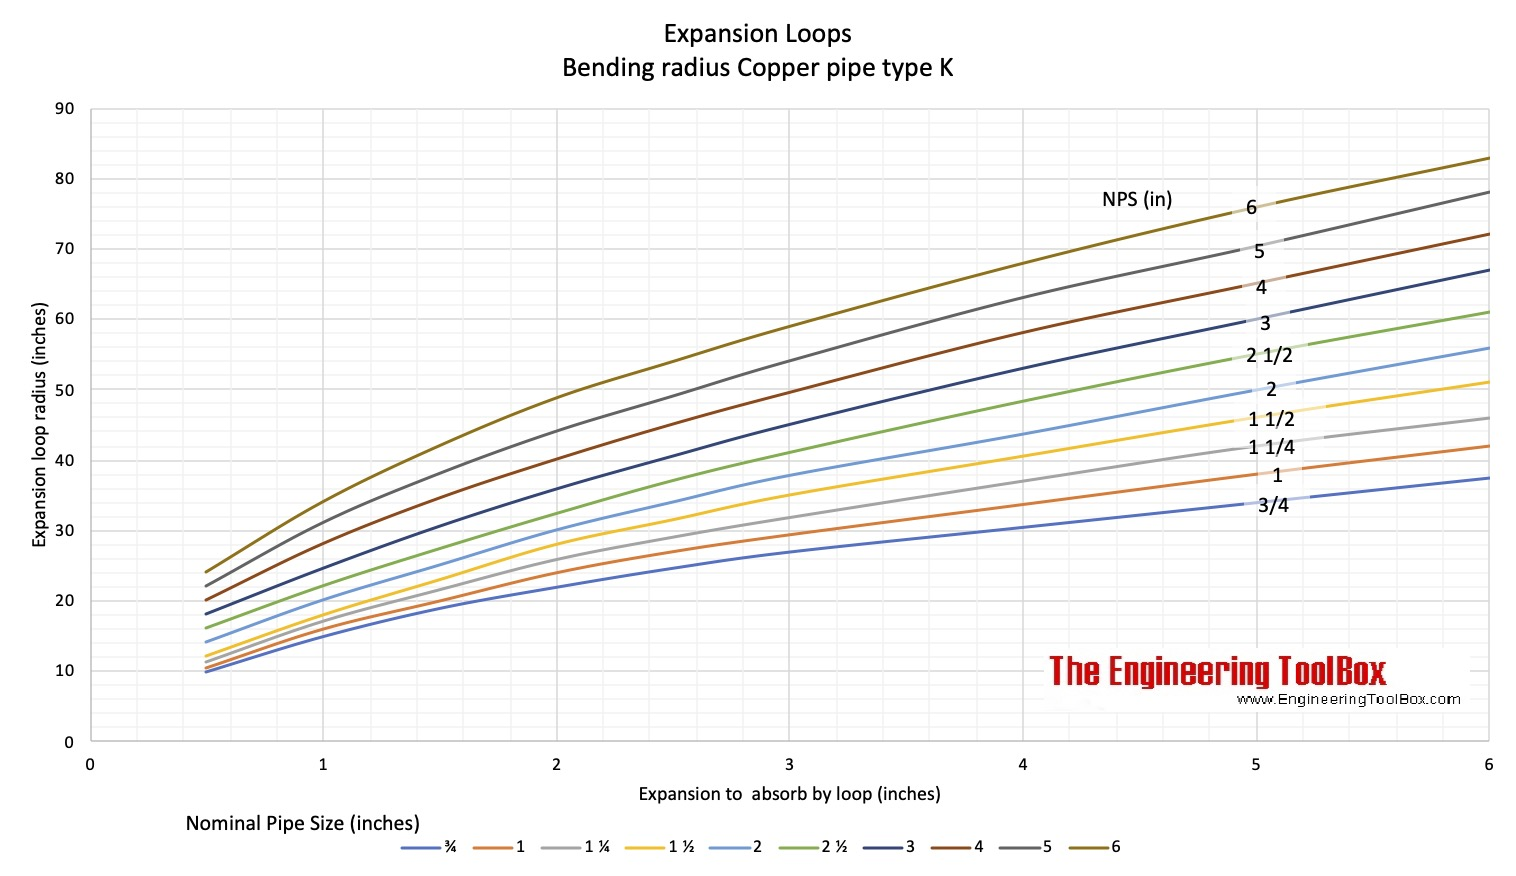 Expansion loop capacity - copper pipe type k